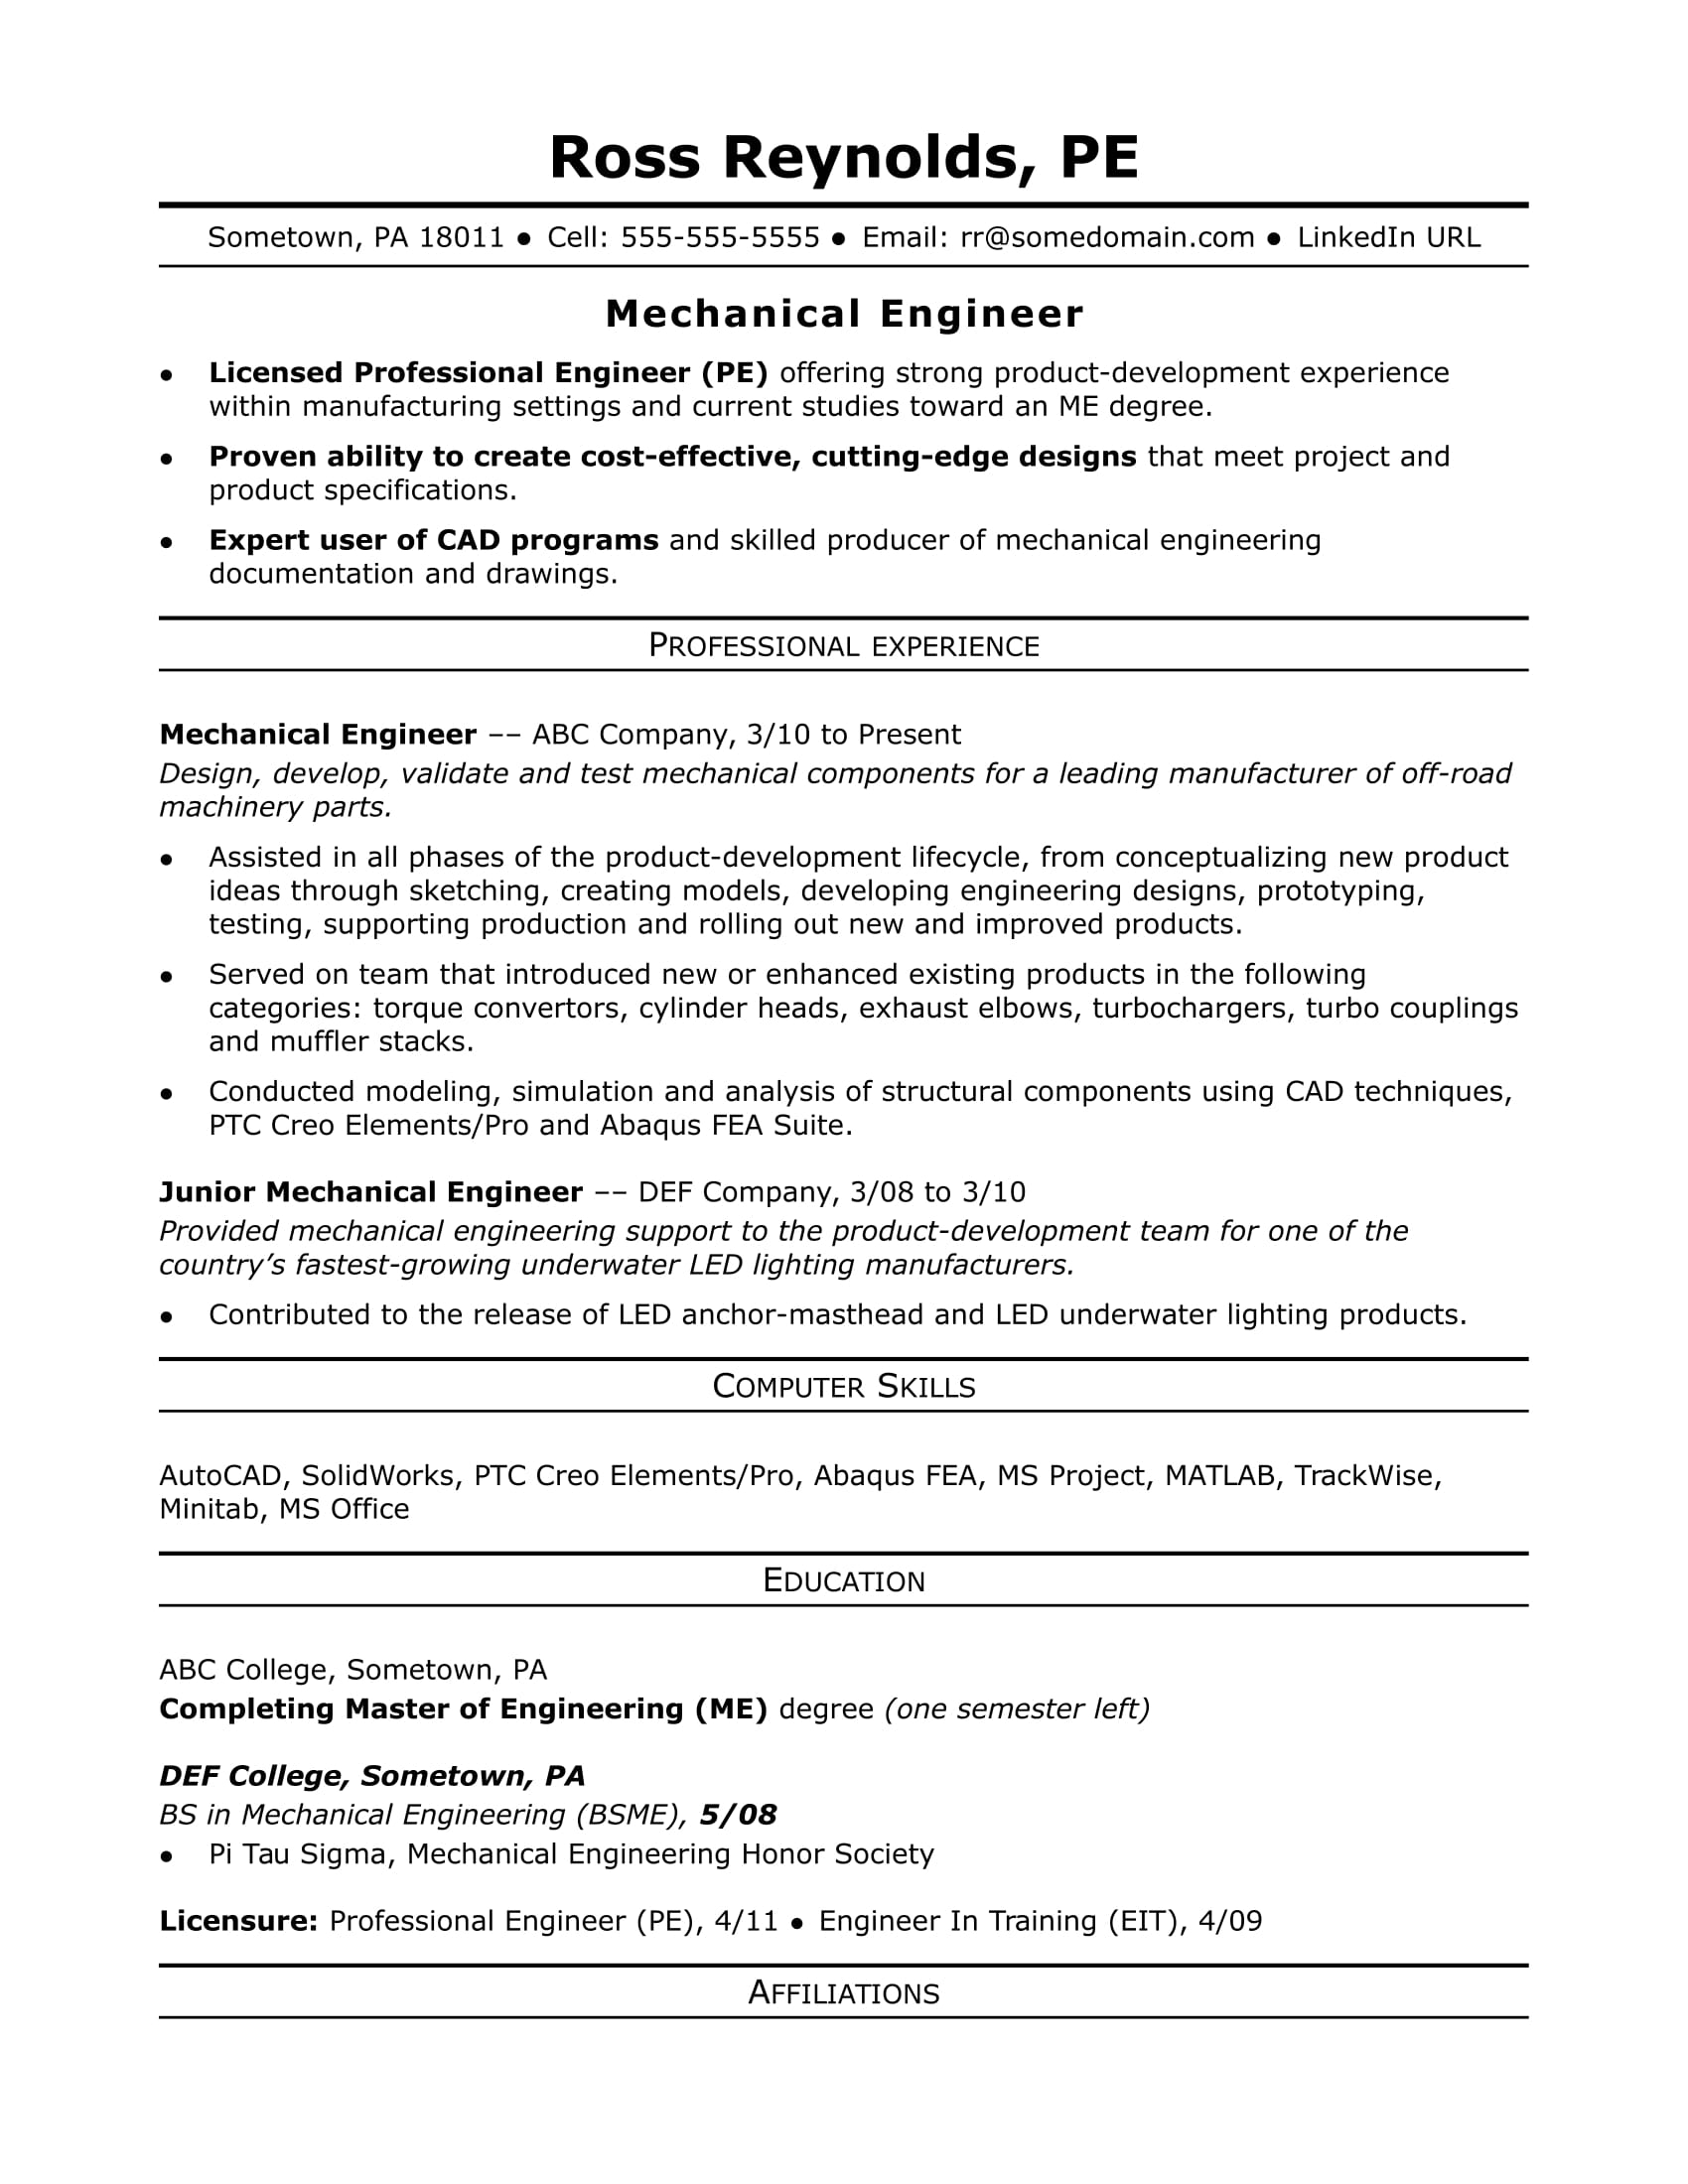 sample resume for a midlevel mechanical engineer - Mid Career Resume Sample